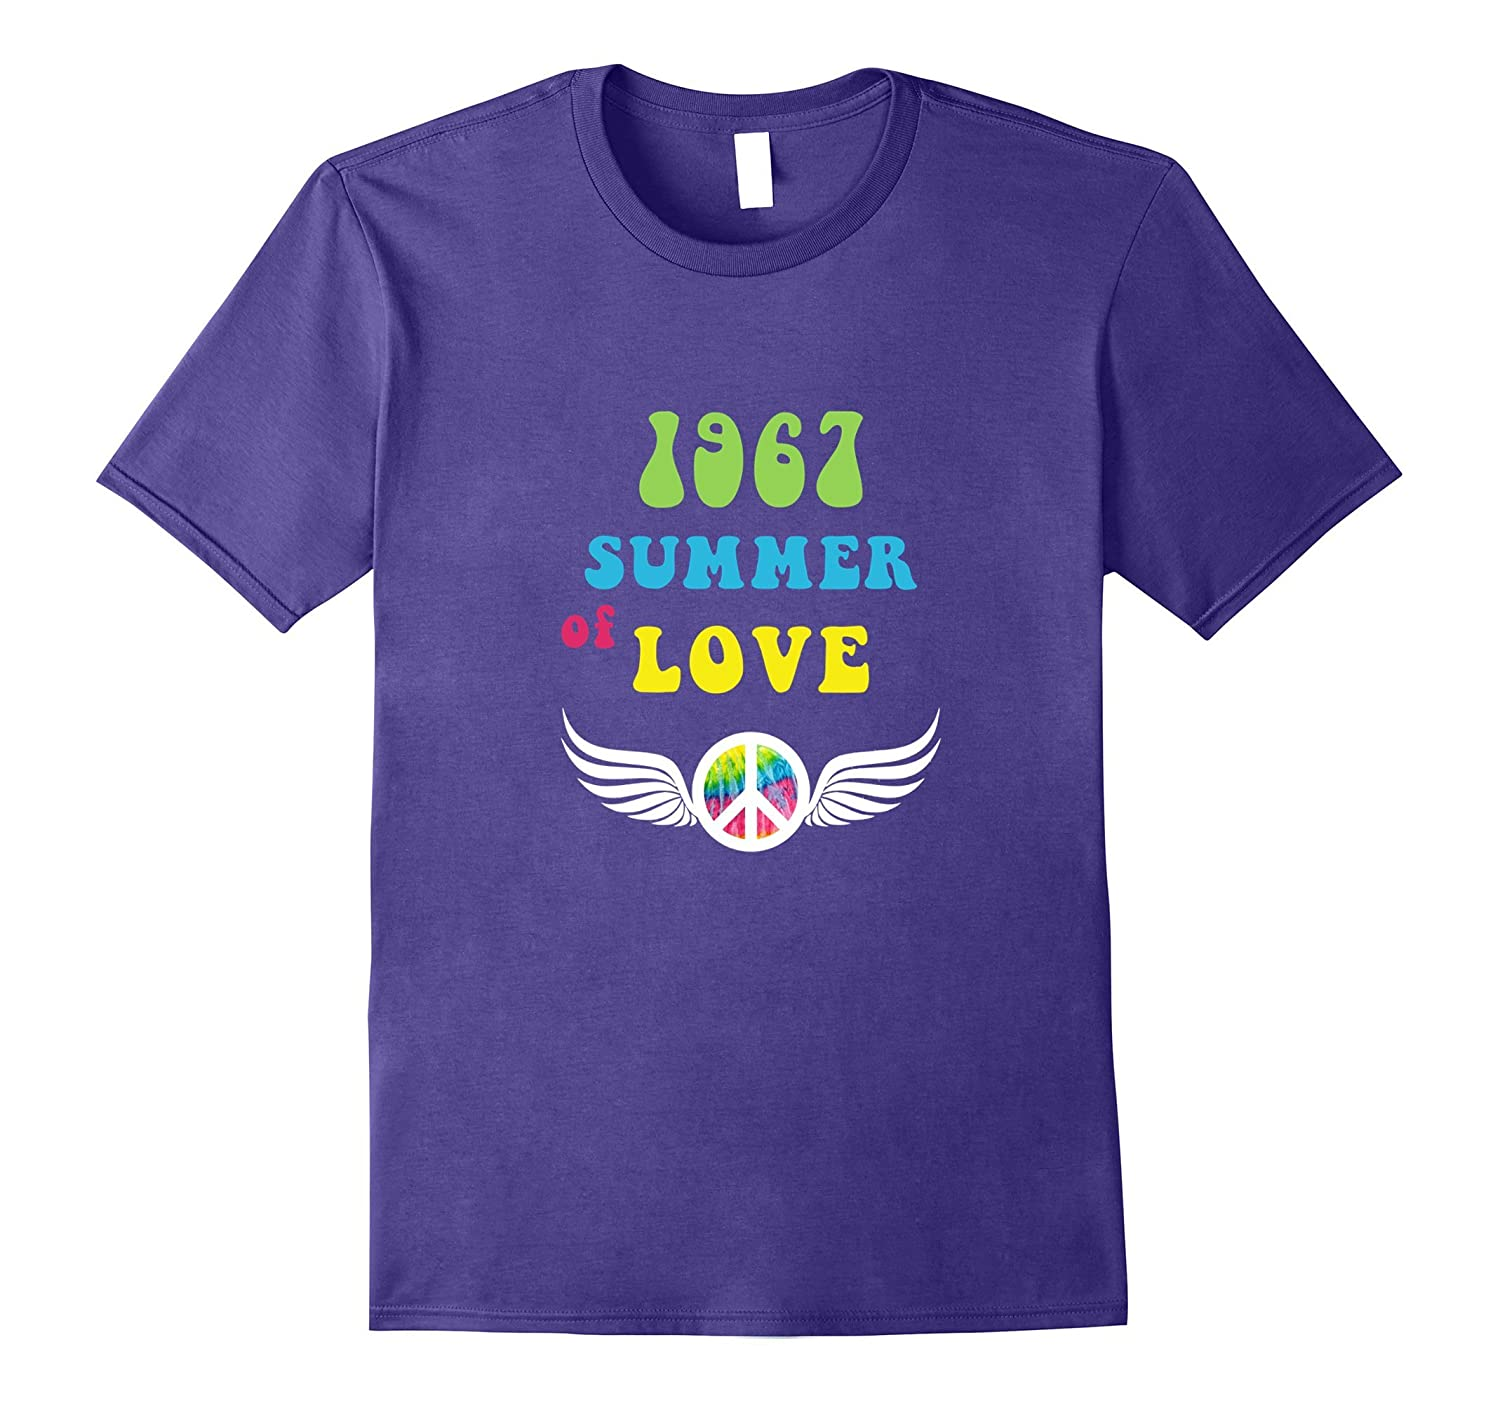 1967 Summer of Love Flying Peace Wings T-shirt-Vaci